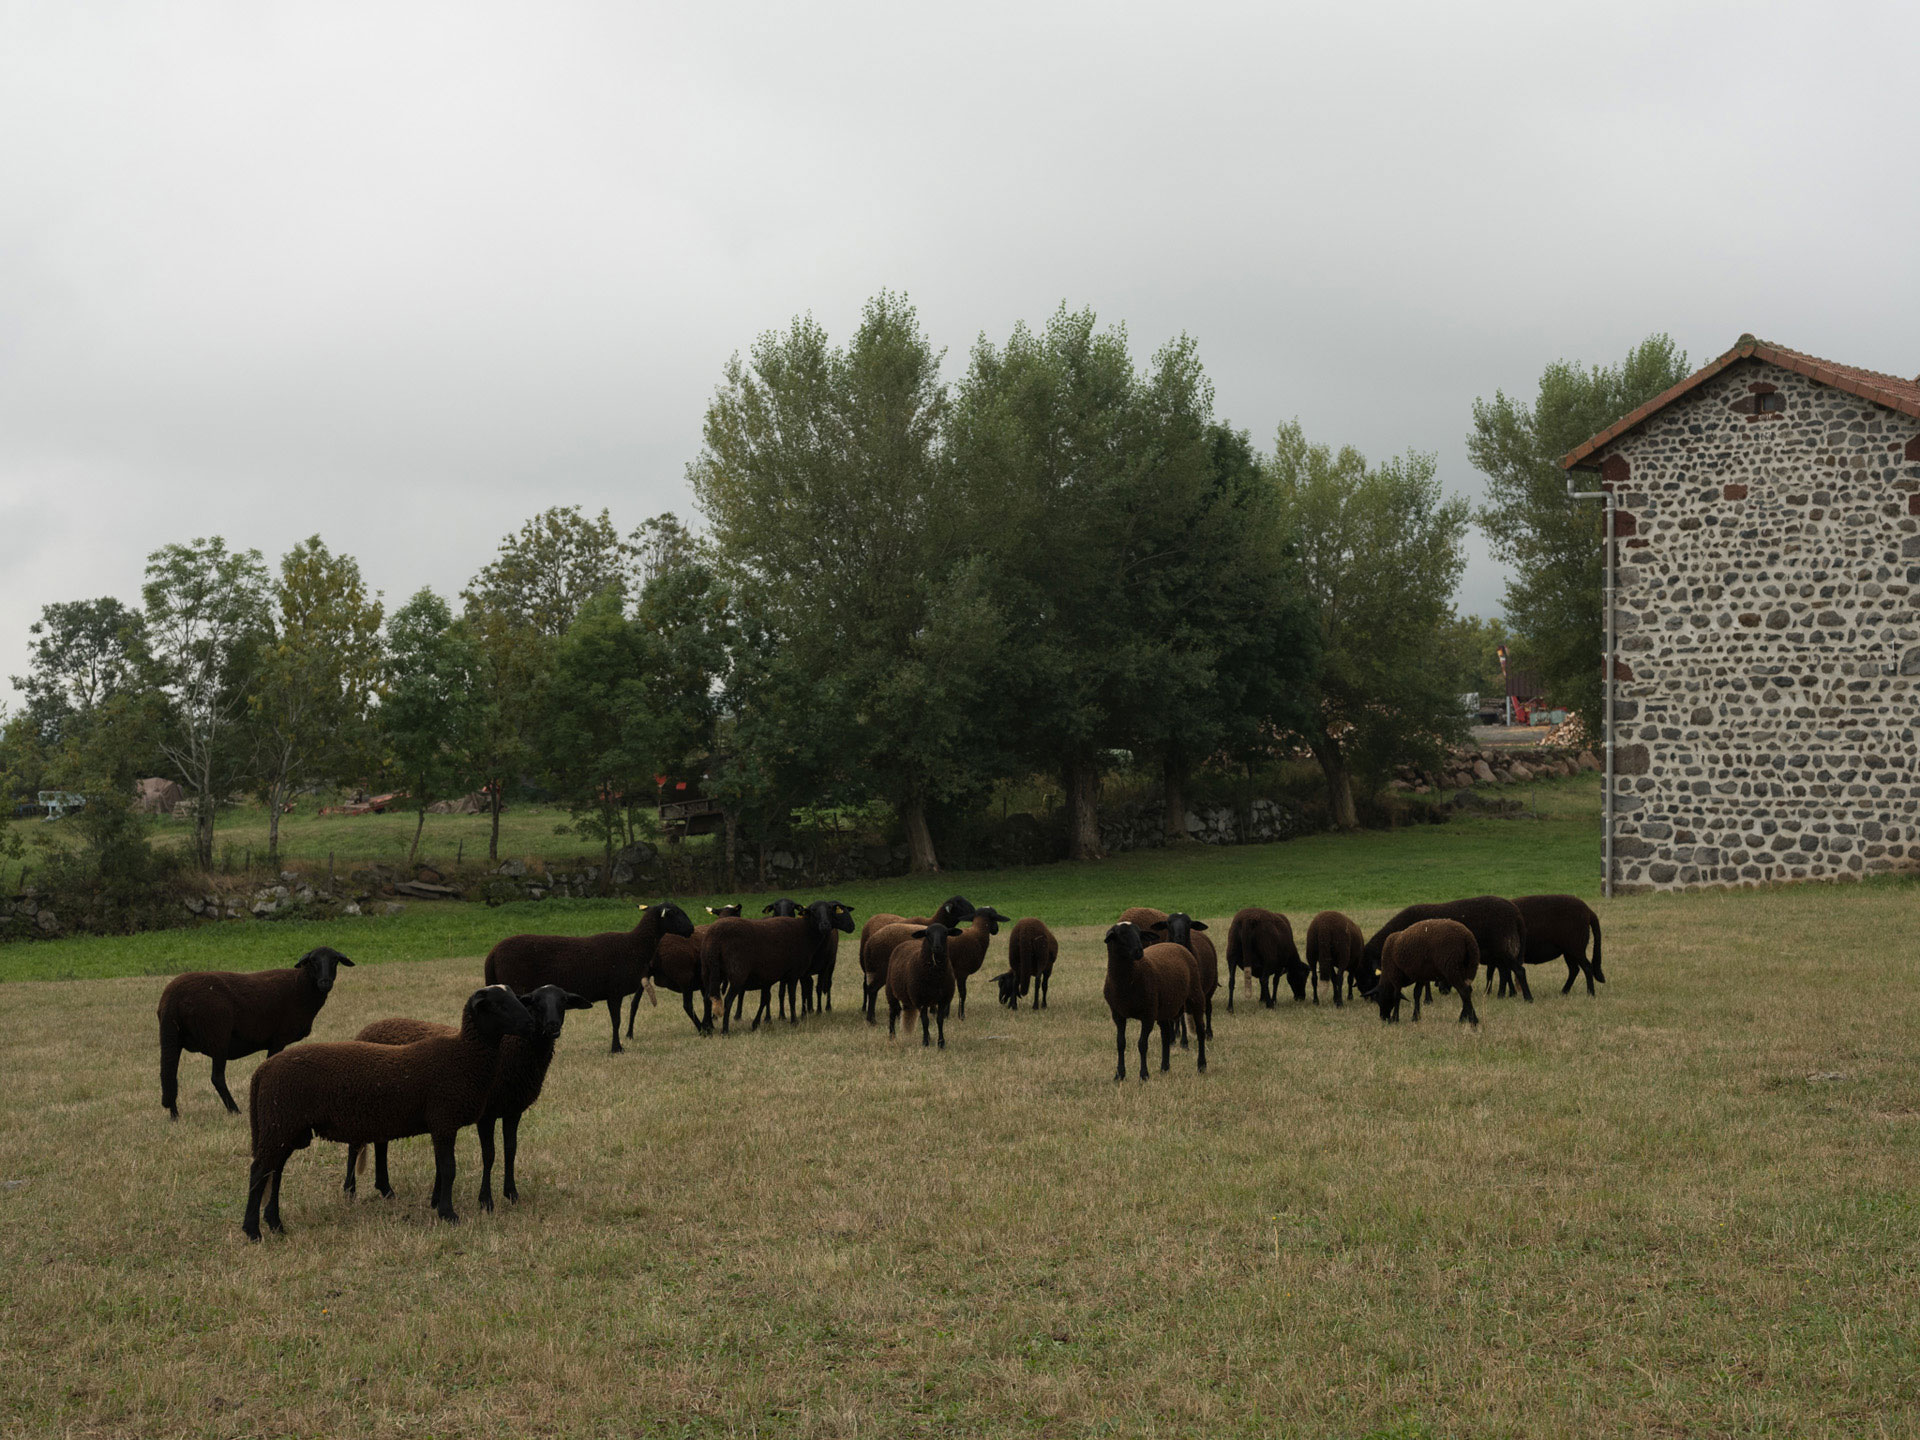 bunch of dark brown goats eating grass next to farm house by Alexi Hobbs in Auvergne for Reflets de France